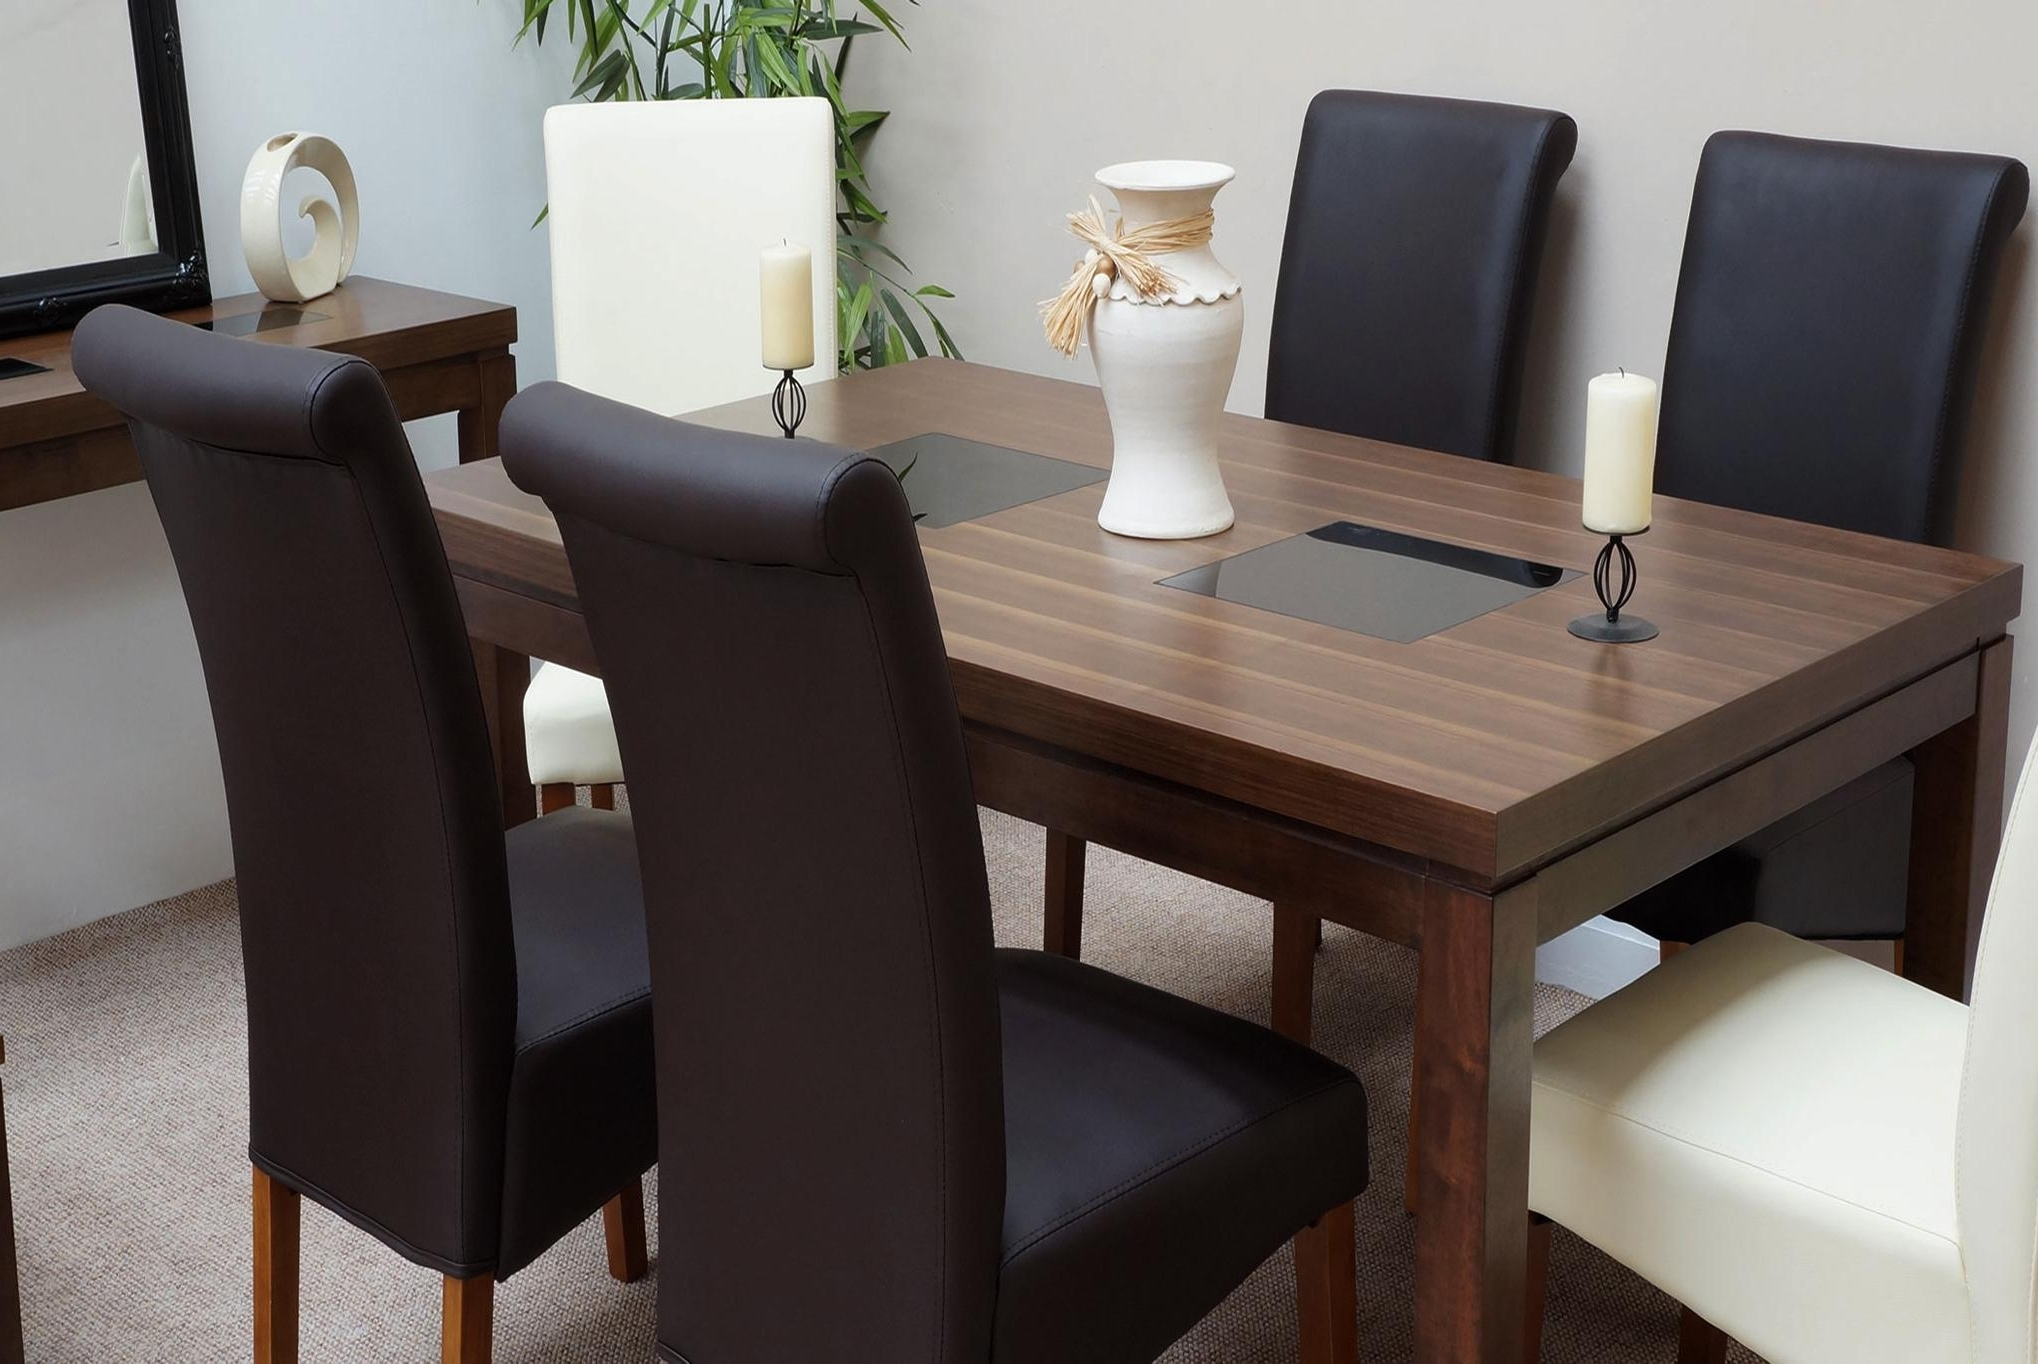 Fashionable Walnut Dining Tables And Chairs With Sydney Walnut Dining Set + 4 Chairs – Dublin, Ireland Furniture (View 7 of 25)